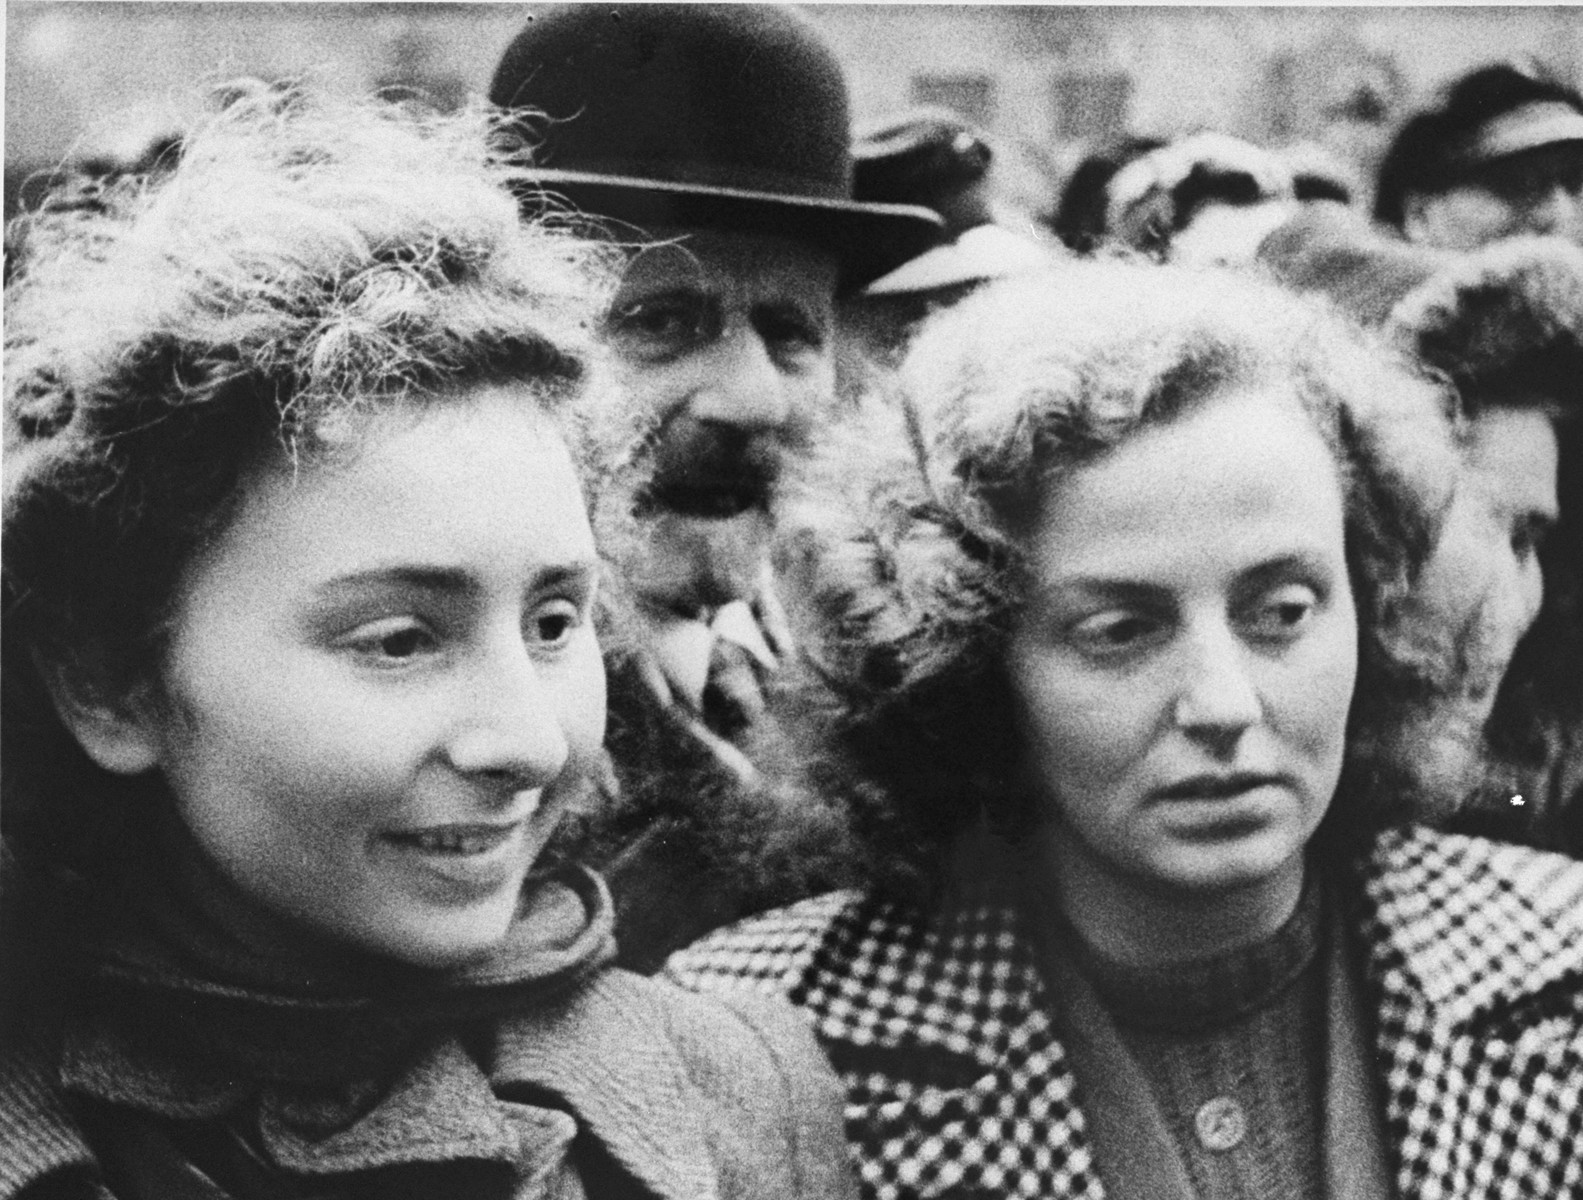 Two young women who have just arrived in Theresienstadt with a transport of Dutch Jews, wait in the courtyard of the ghetto.  [oversized photo]